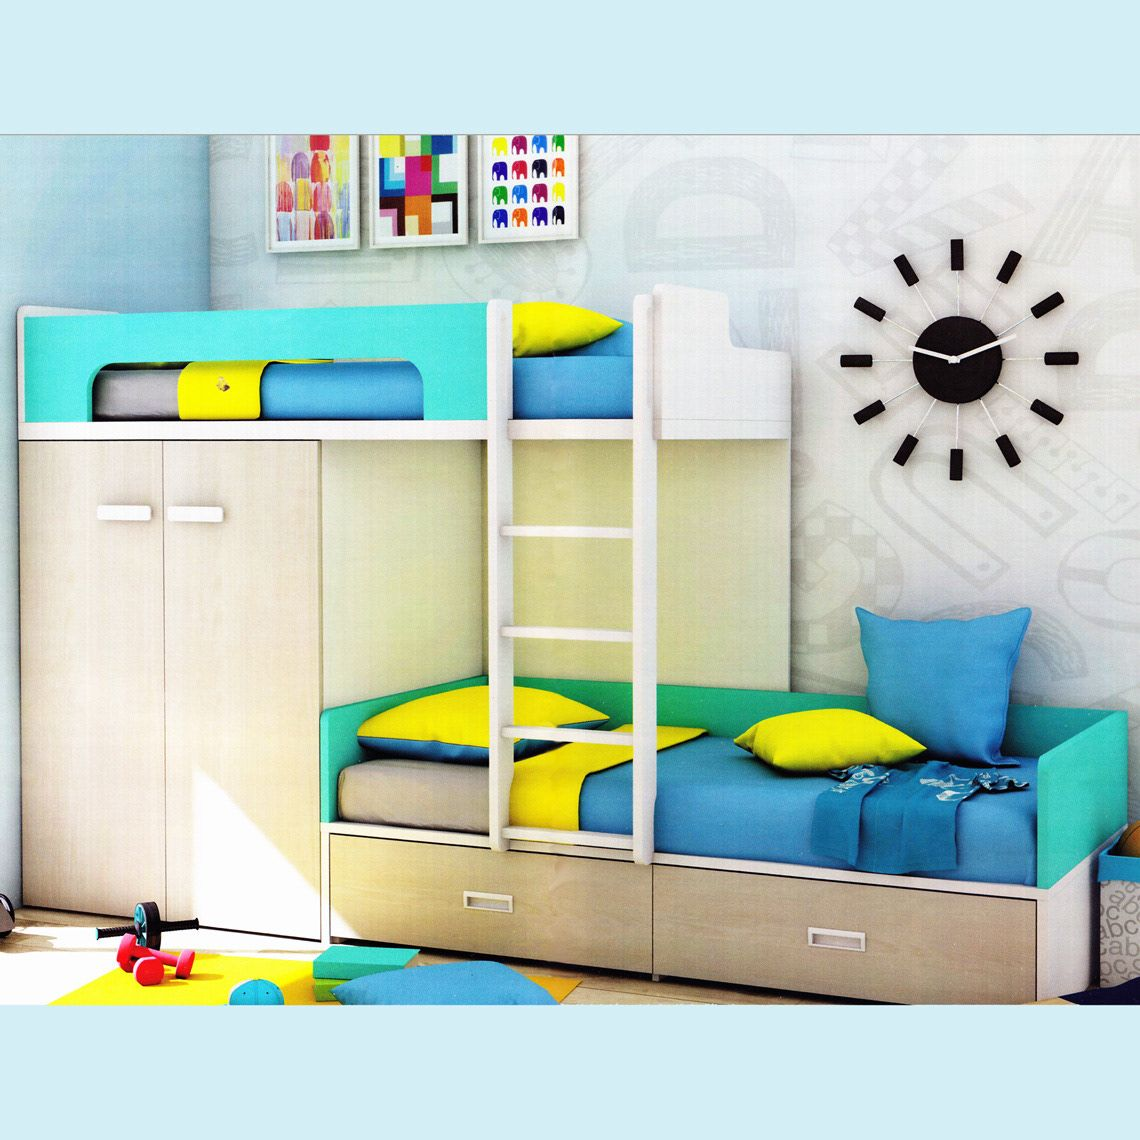 If You Wish To Find The Best Quality Bed With Wardrobe Then You Can Get It From Us Without Any Problem At All Bunk Beds Kid Beds Bed